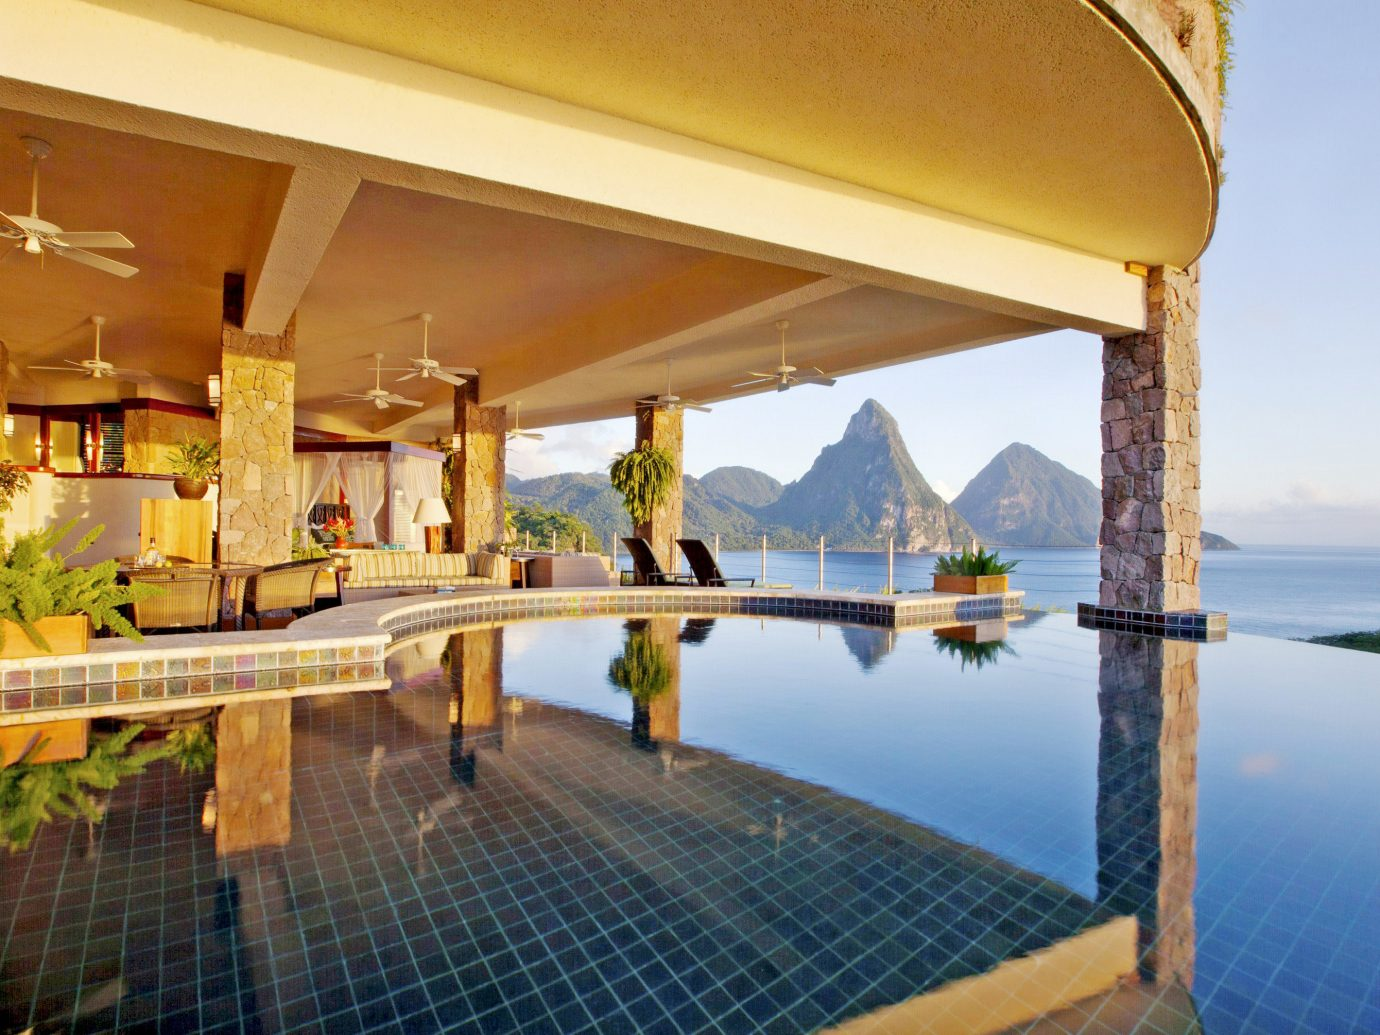 Hotels Luxury Travel property Resort estate swimming pool real estate leisure Villa home hotel apartment hacienda vacation penthouse apartment resort town